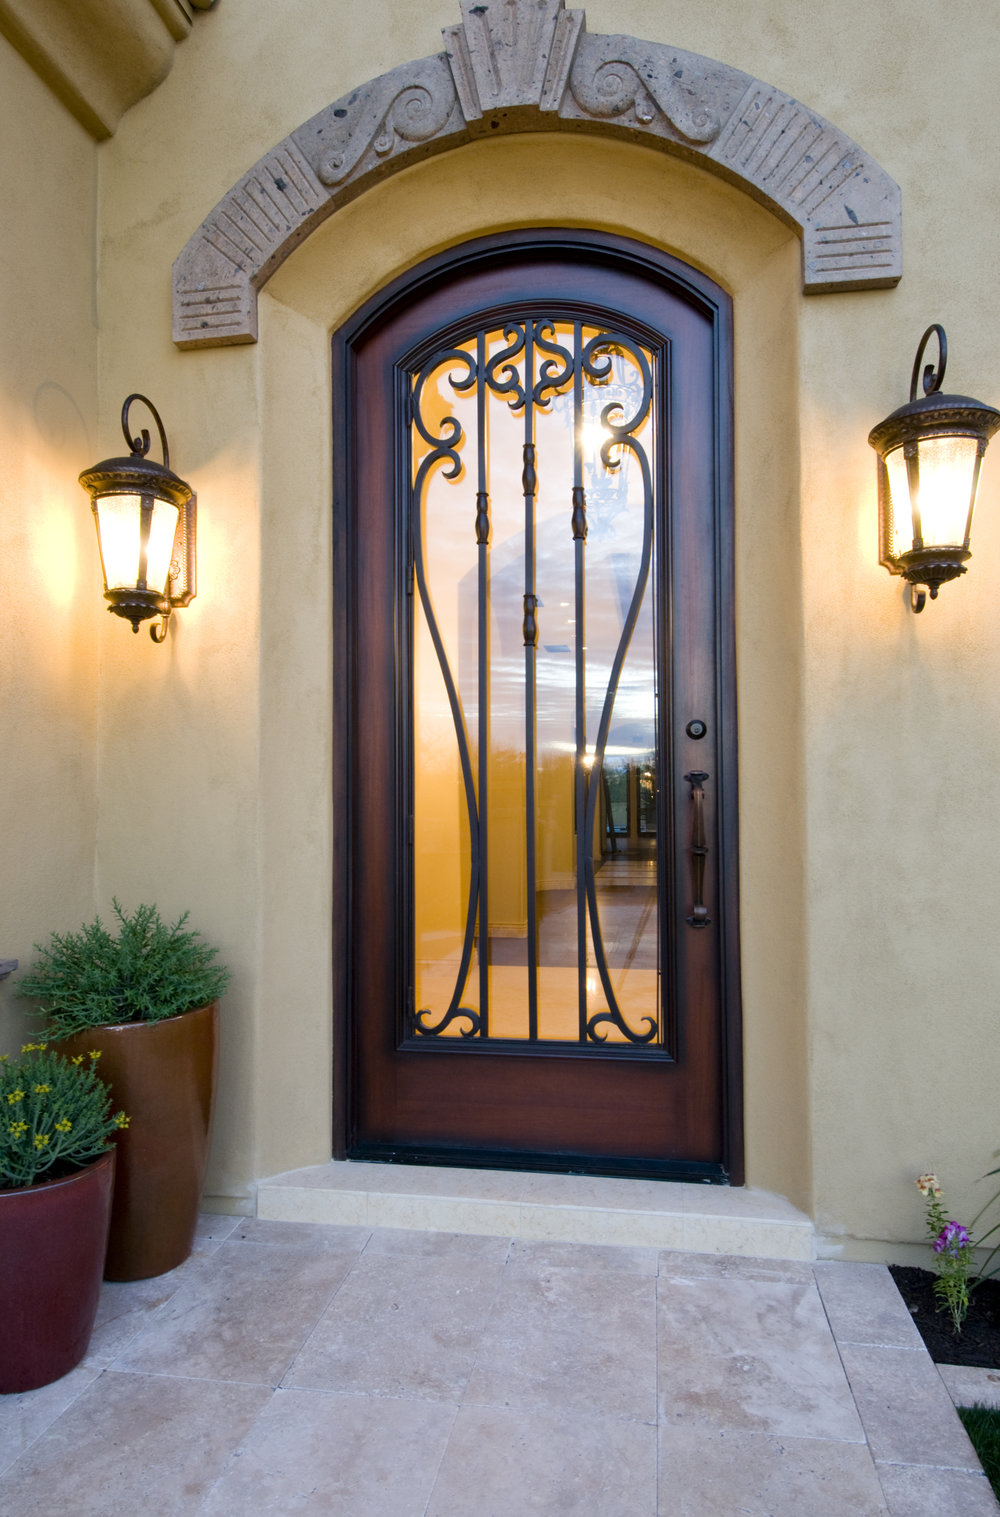 Using the right products with timely maintenance are critical to keeping your front entry and garage doors looking their best for many years to come. & Our Services u2014 Coastal Door Refinishing